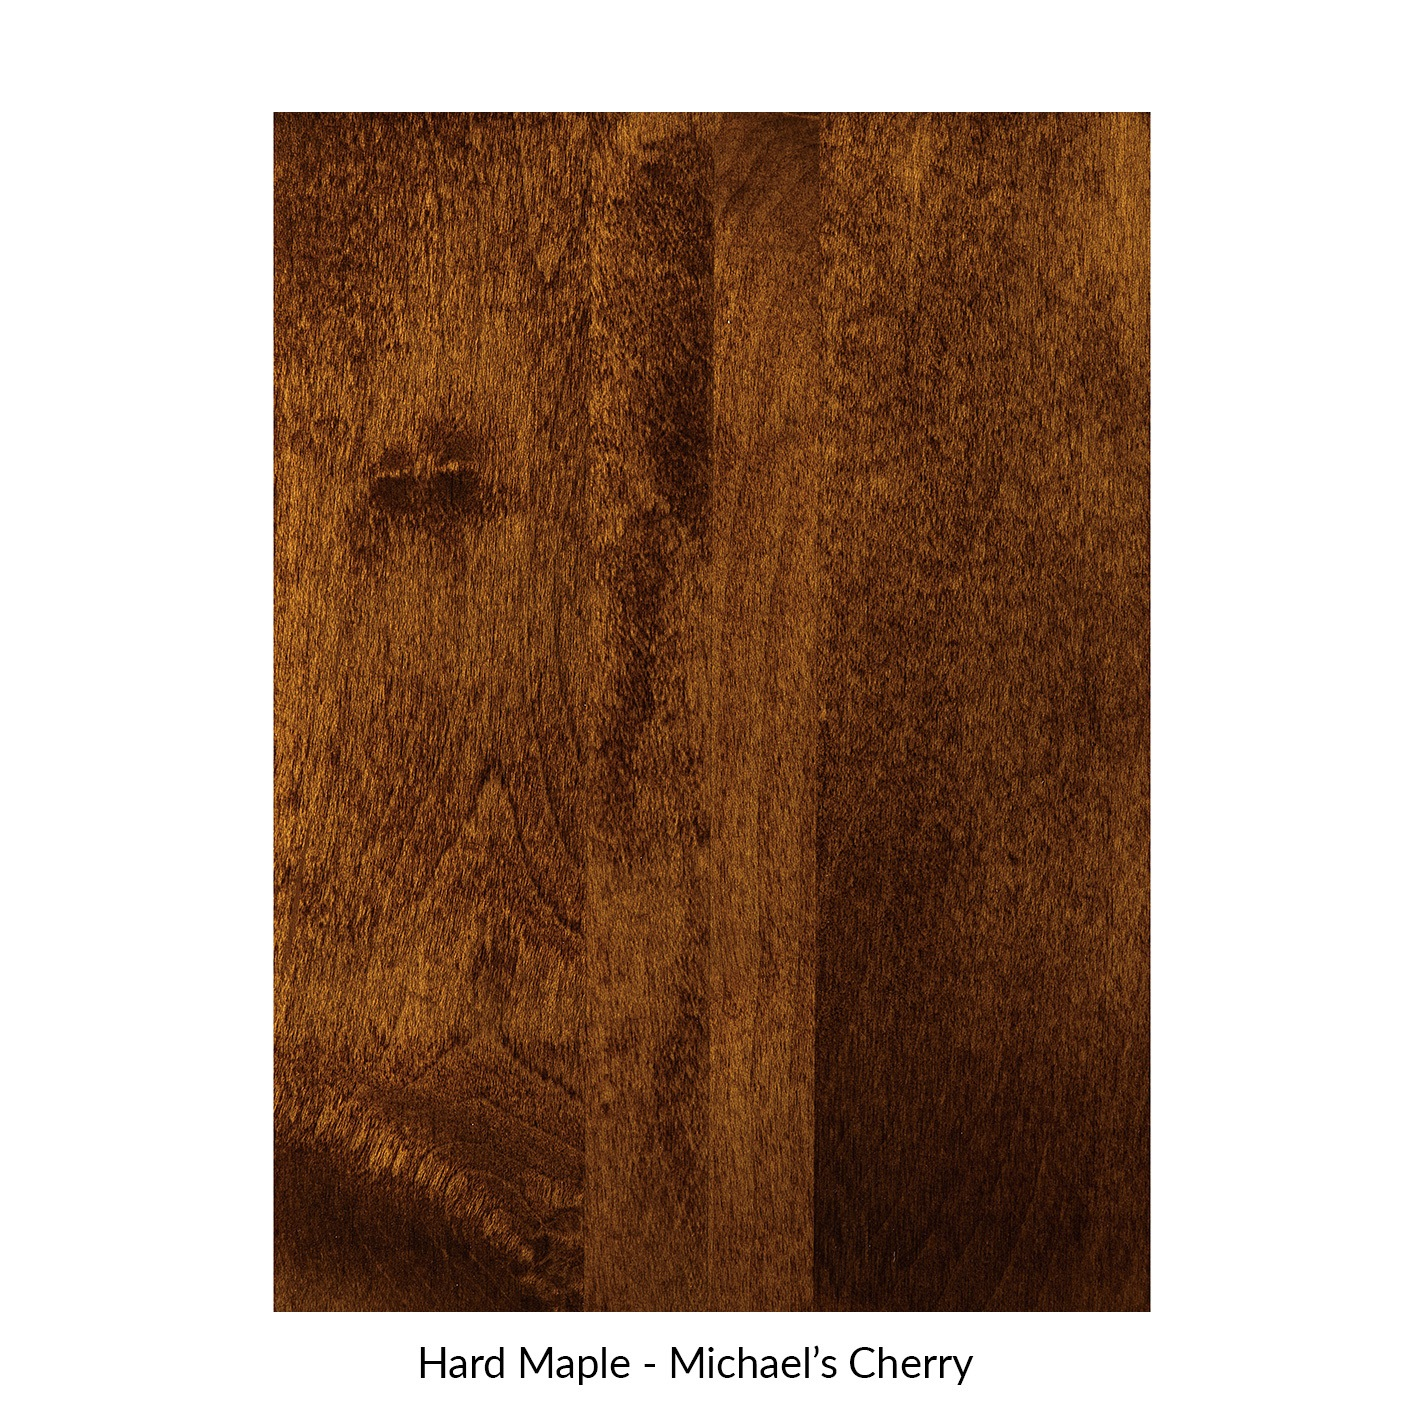 spectrum-hard-maple-michaels-cherry.jpg